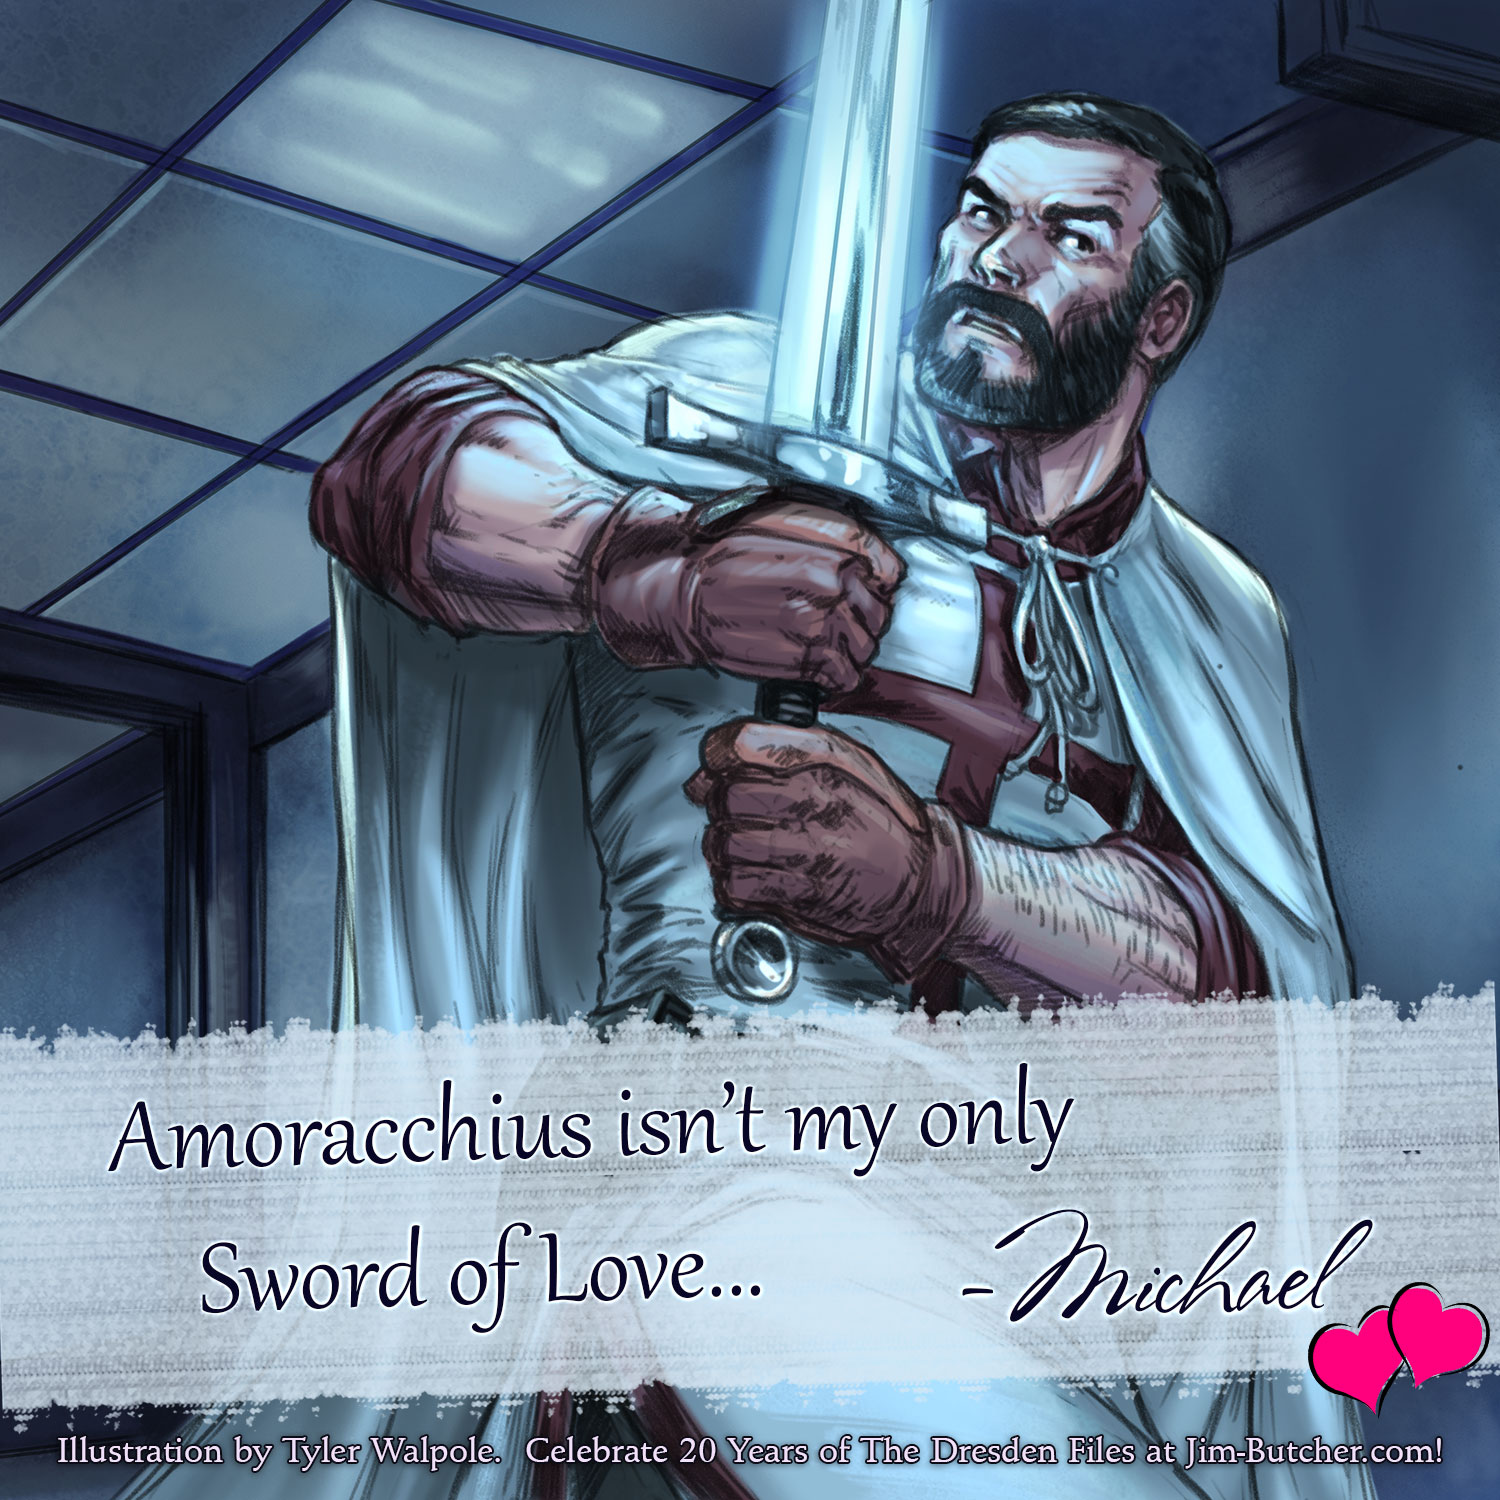 Michael: Amoracchius isn't my only Sword of Love...